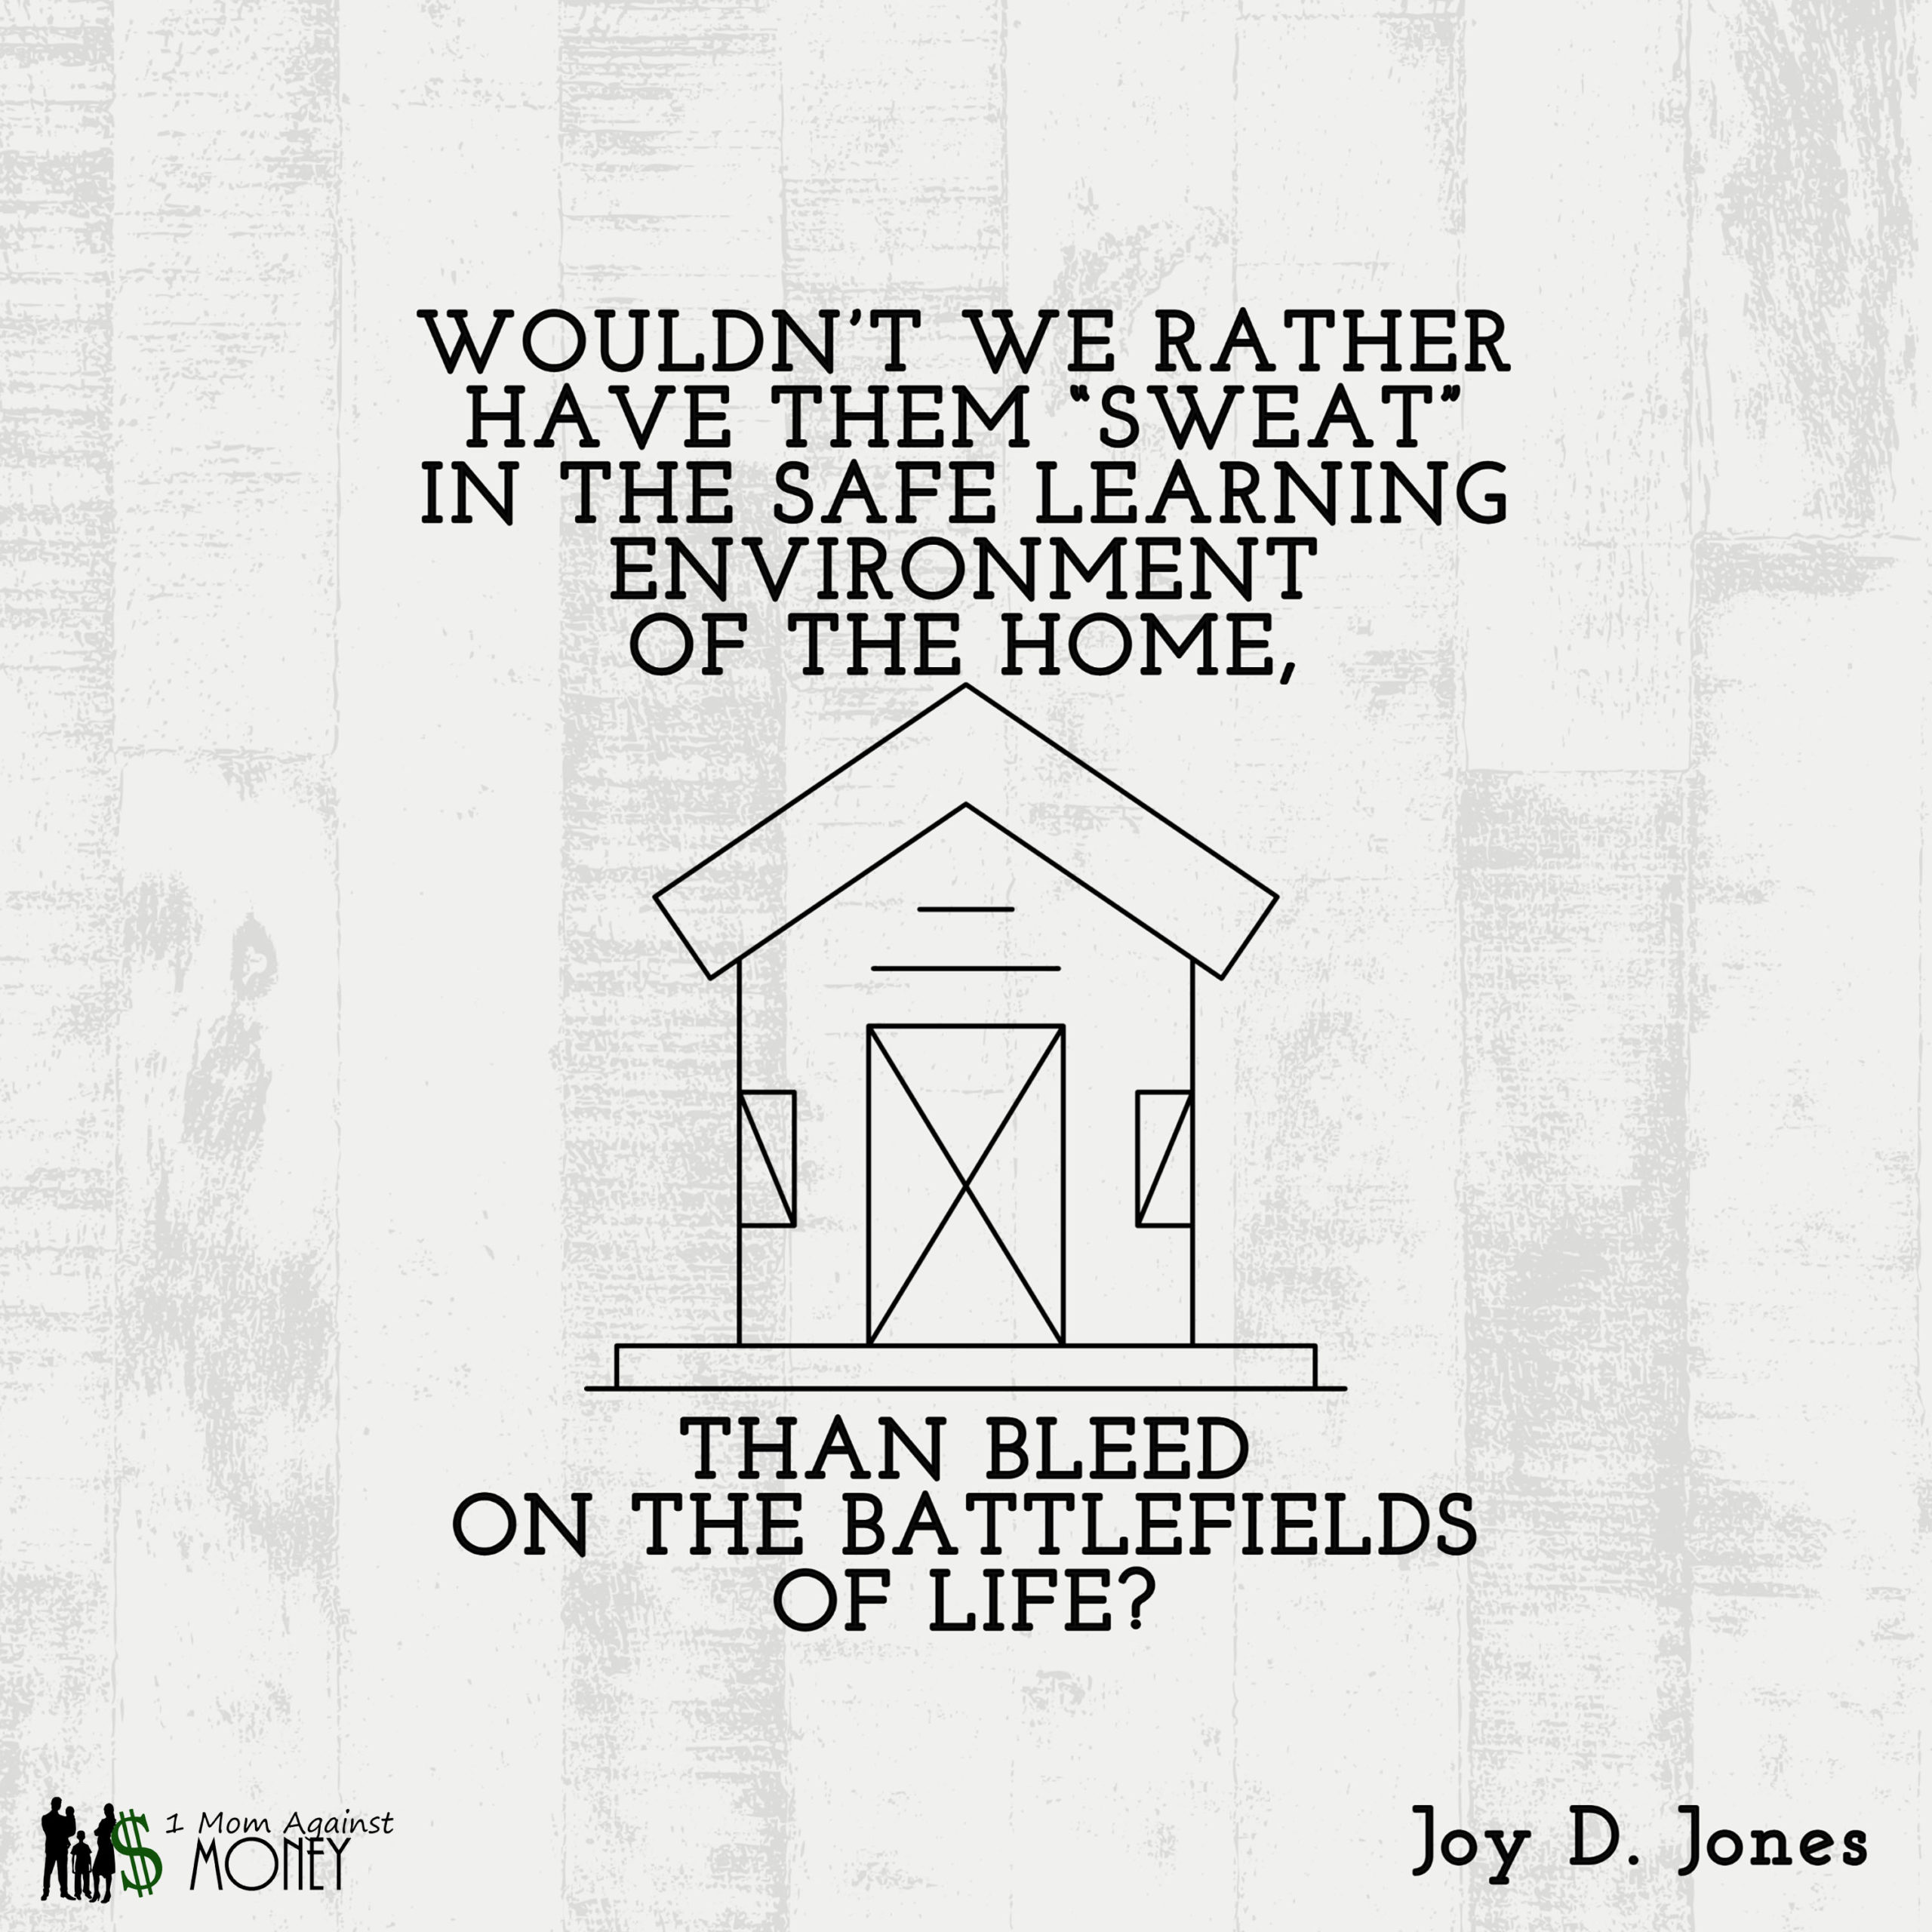 Battlefields of Life Quote